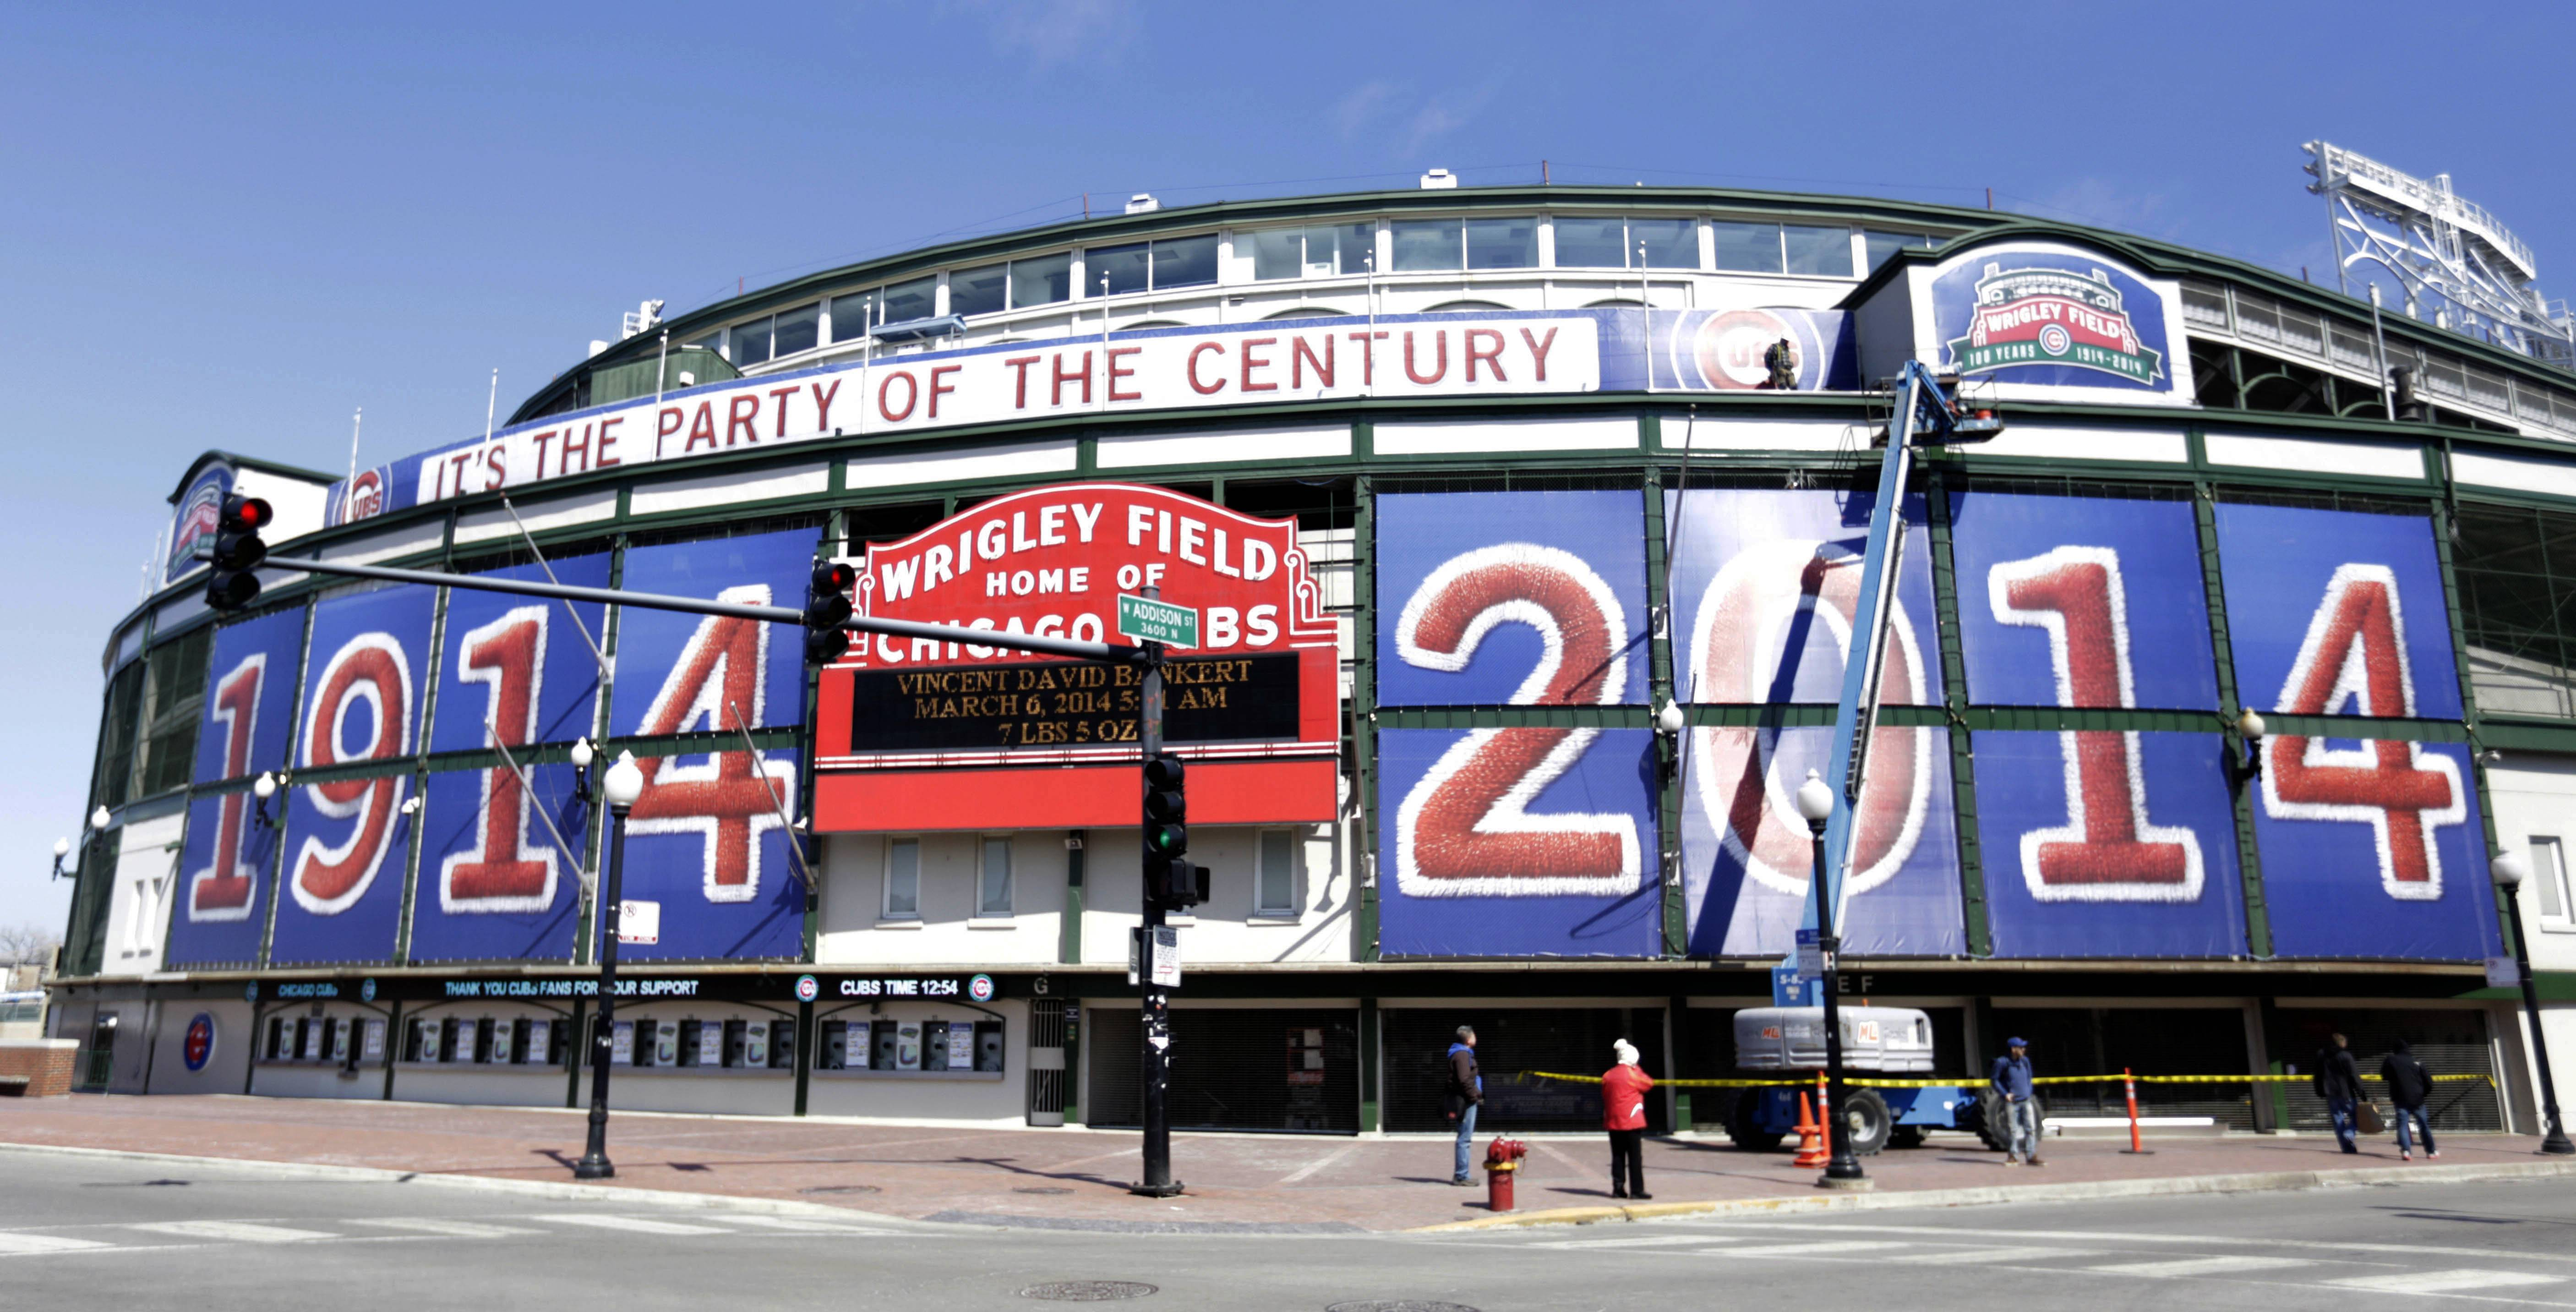 Wrigley Field sports large numerals celebrating the iconic park's 100th anniversary.